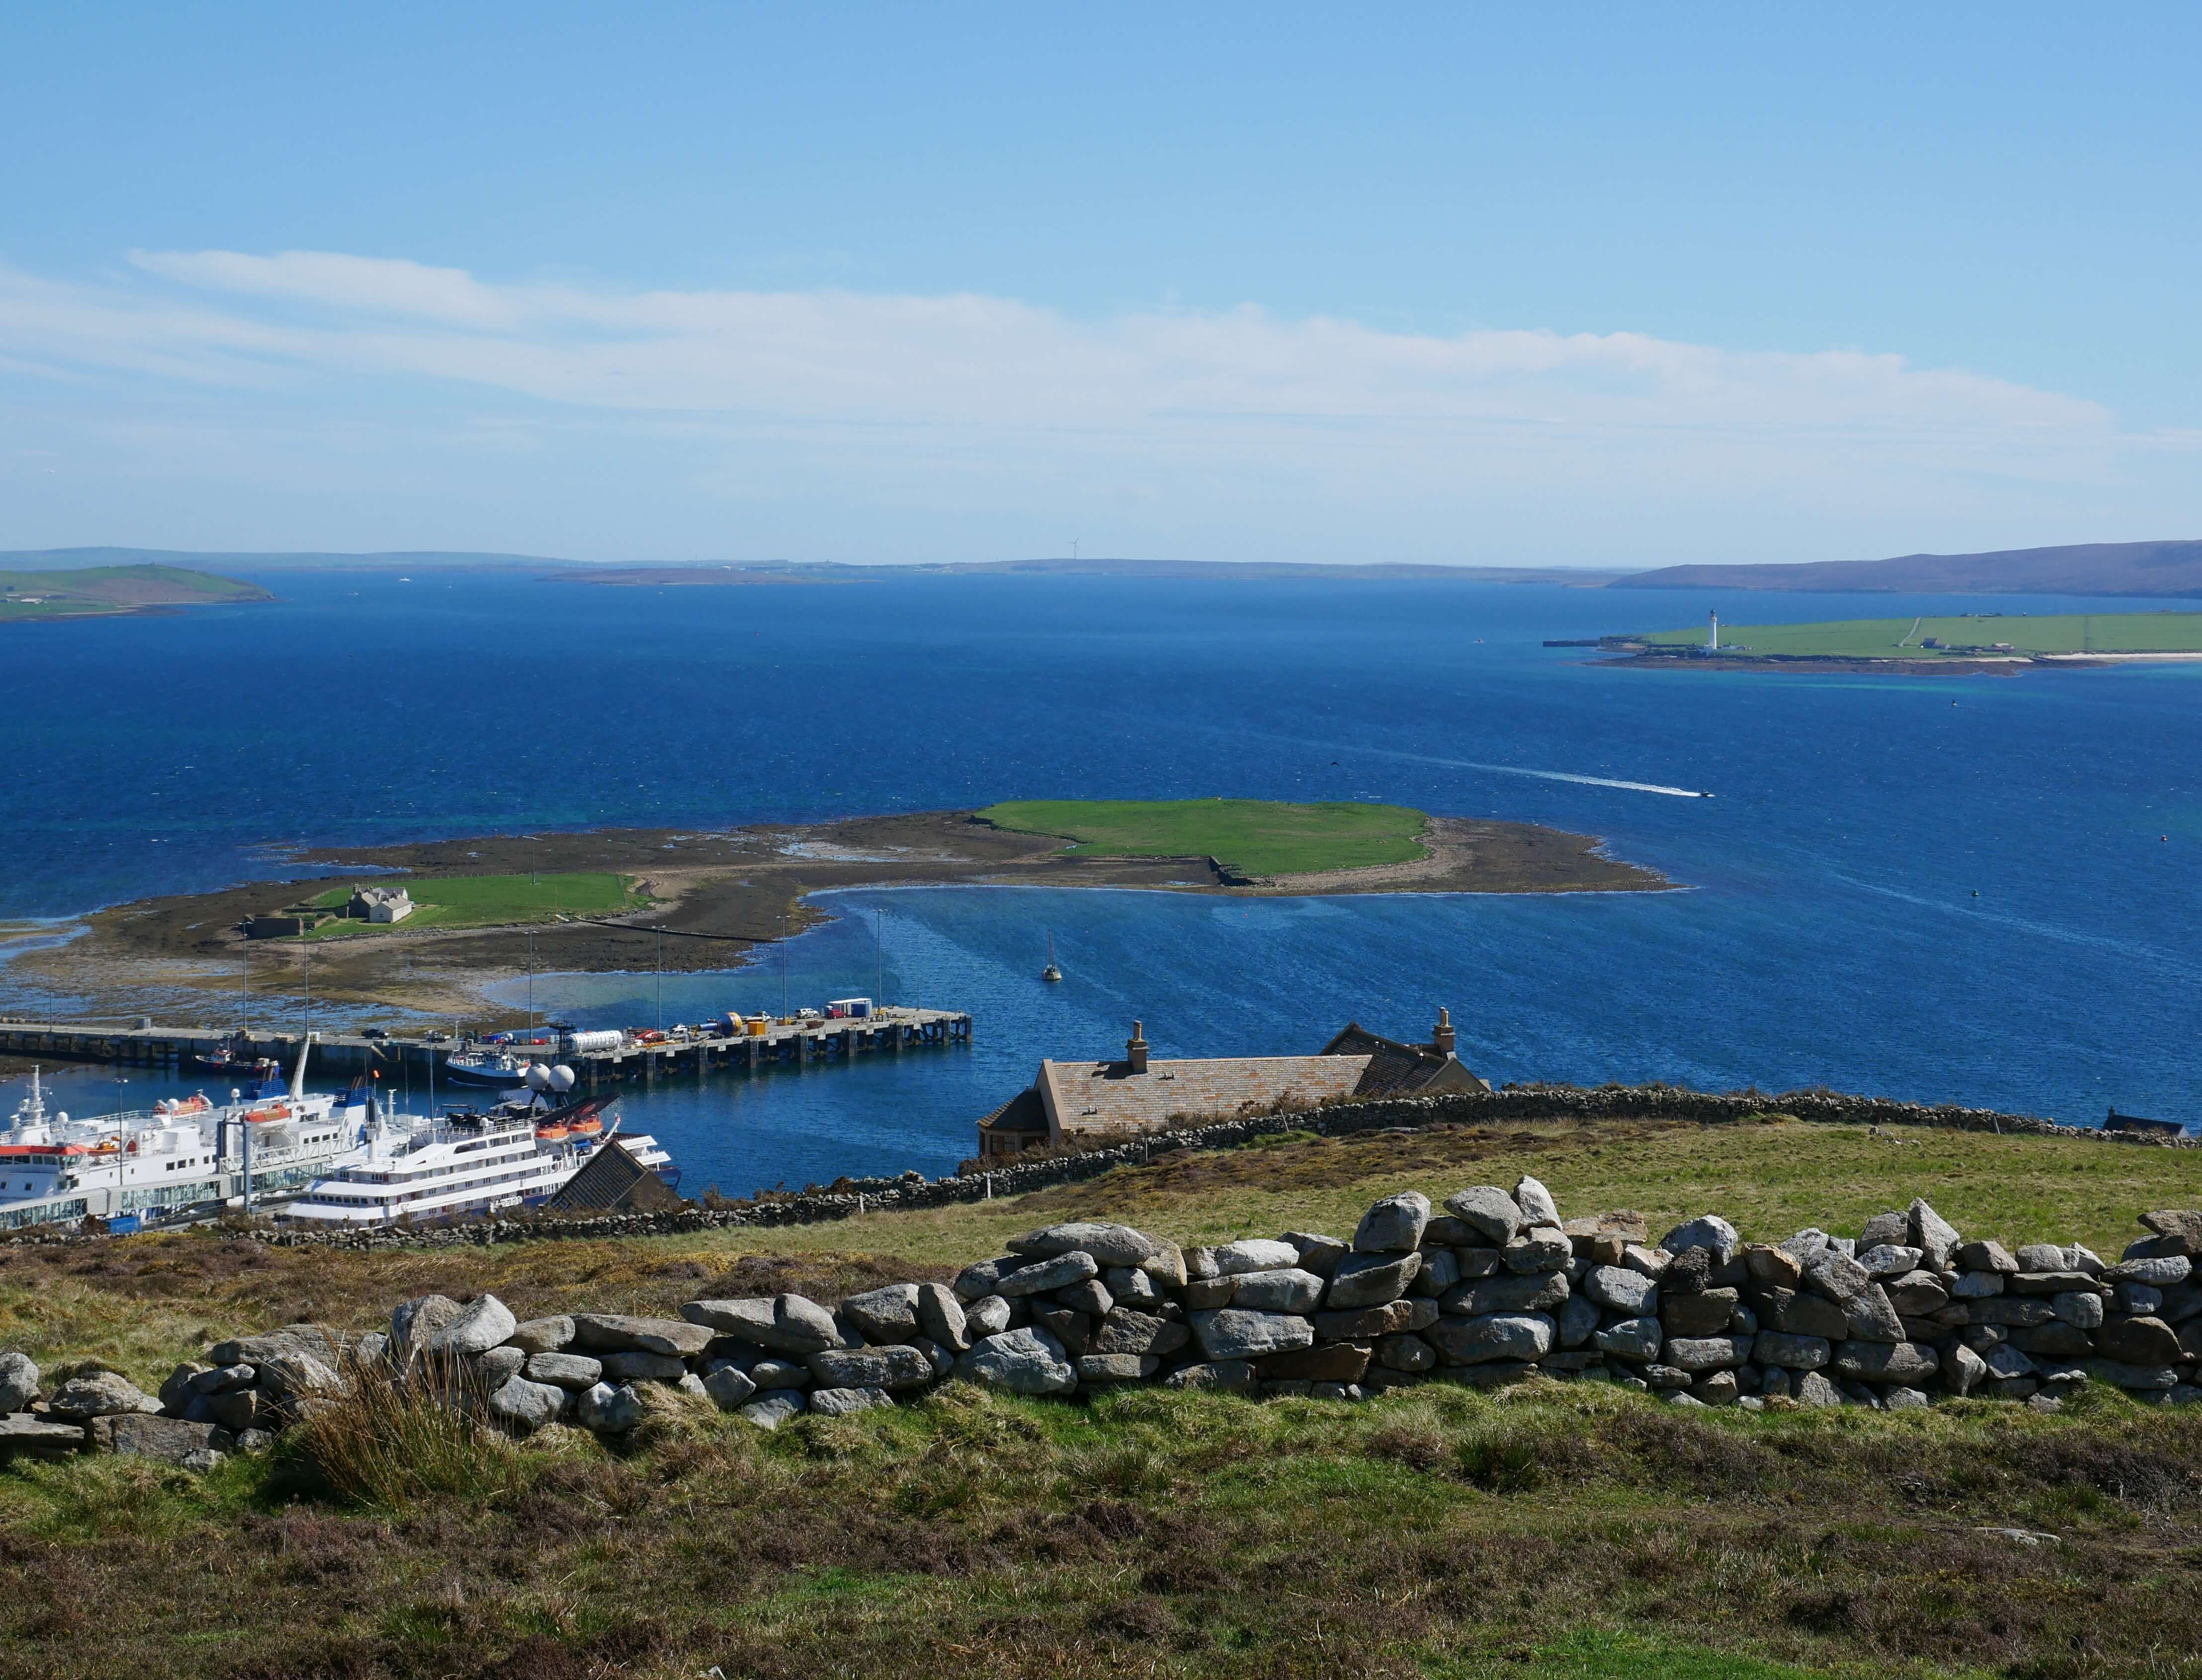 The Holms, Stromness, Orkney Islands, Scotland, as seen from Brinkie's Brae. Orkneyology.com